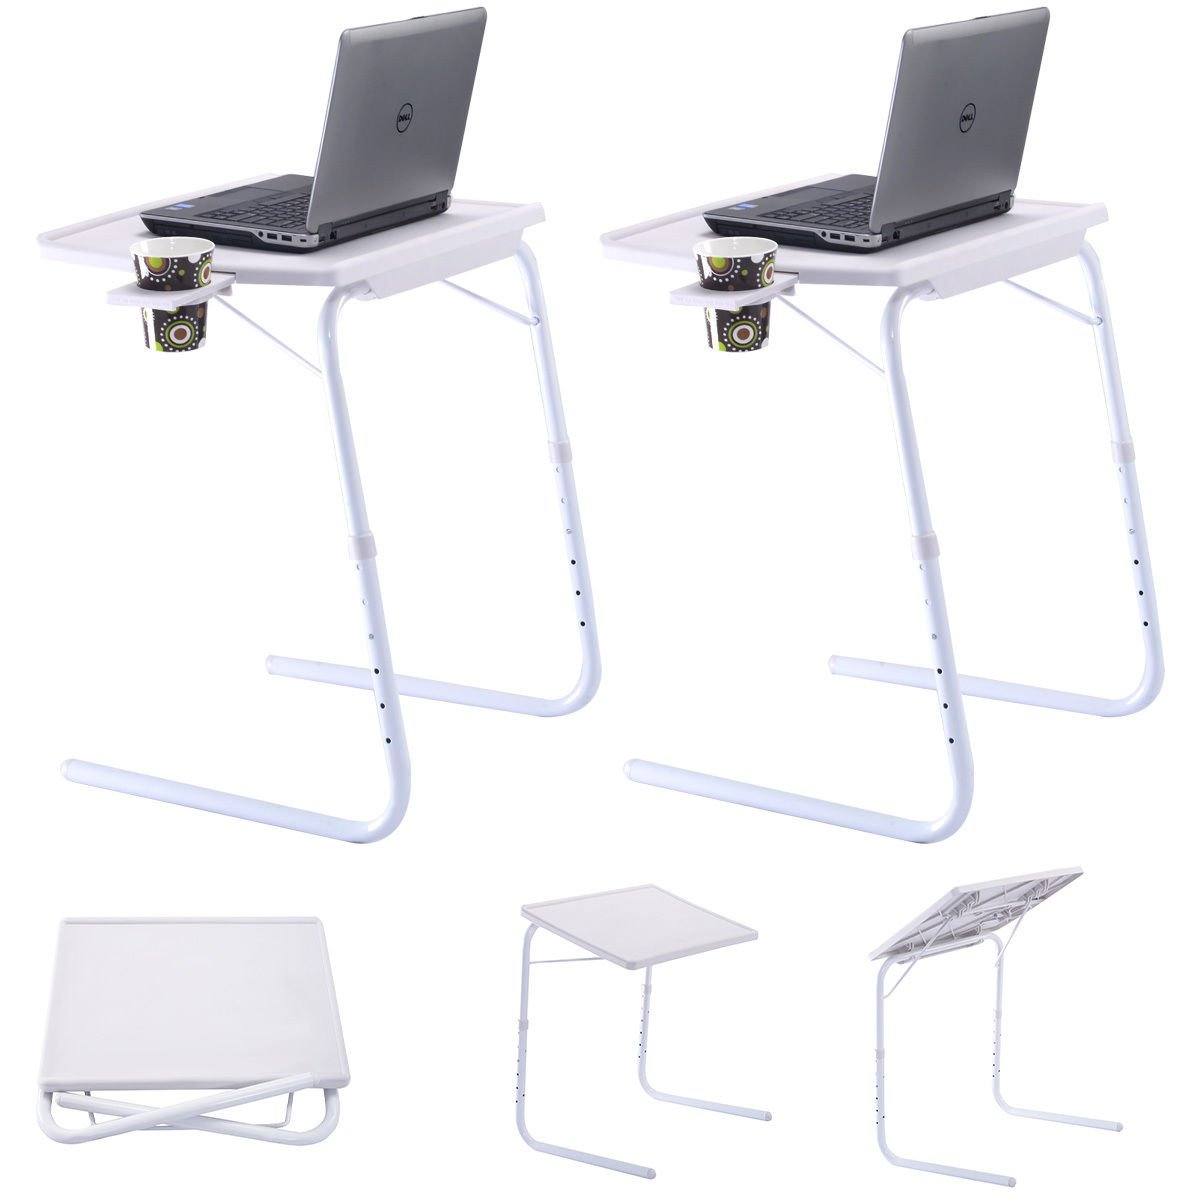 Amazon.com: 2 x Adjustable PC TV Laptop Desk Tray Home Office White ...